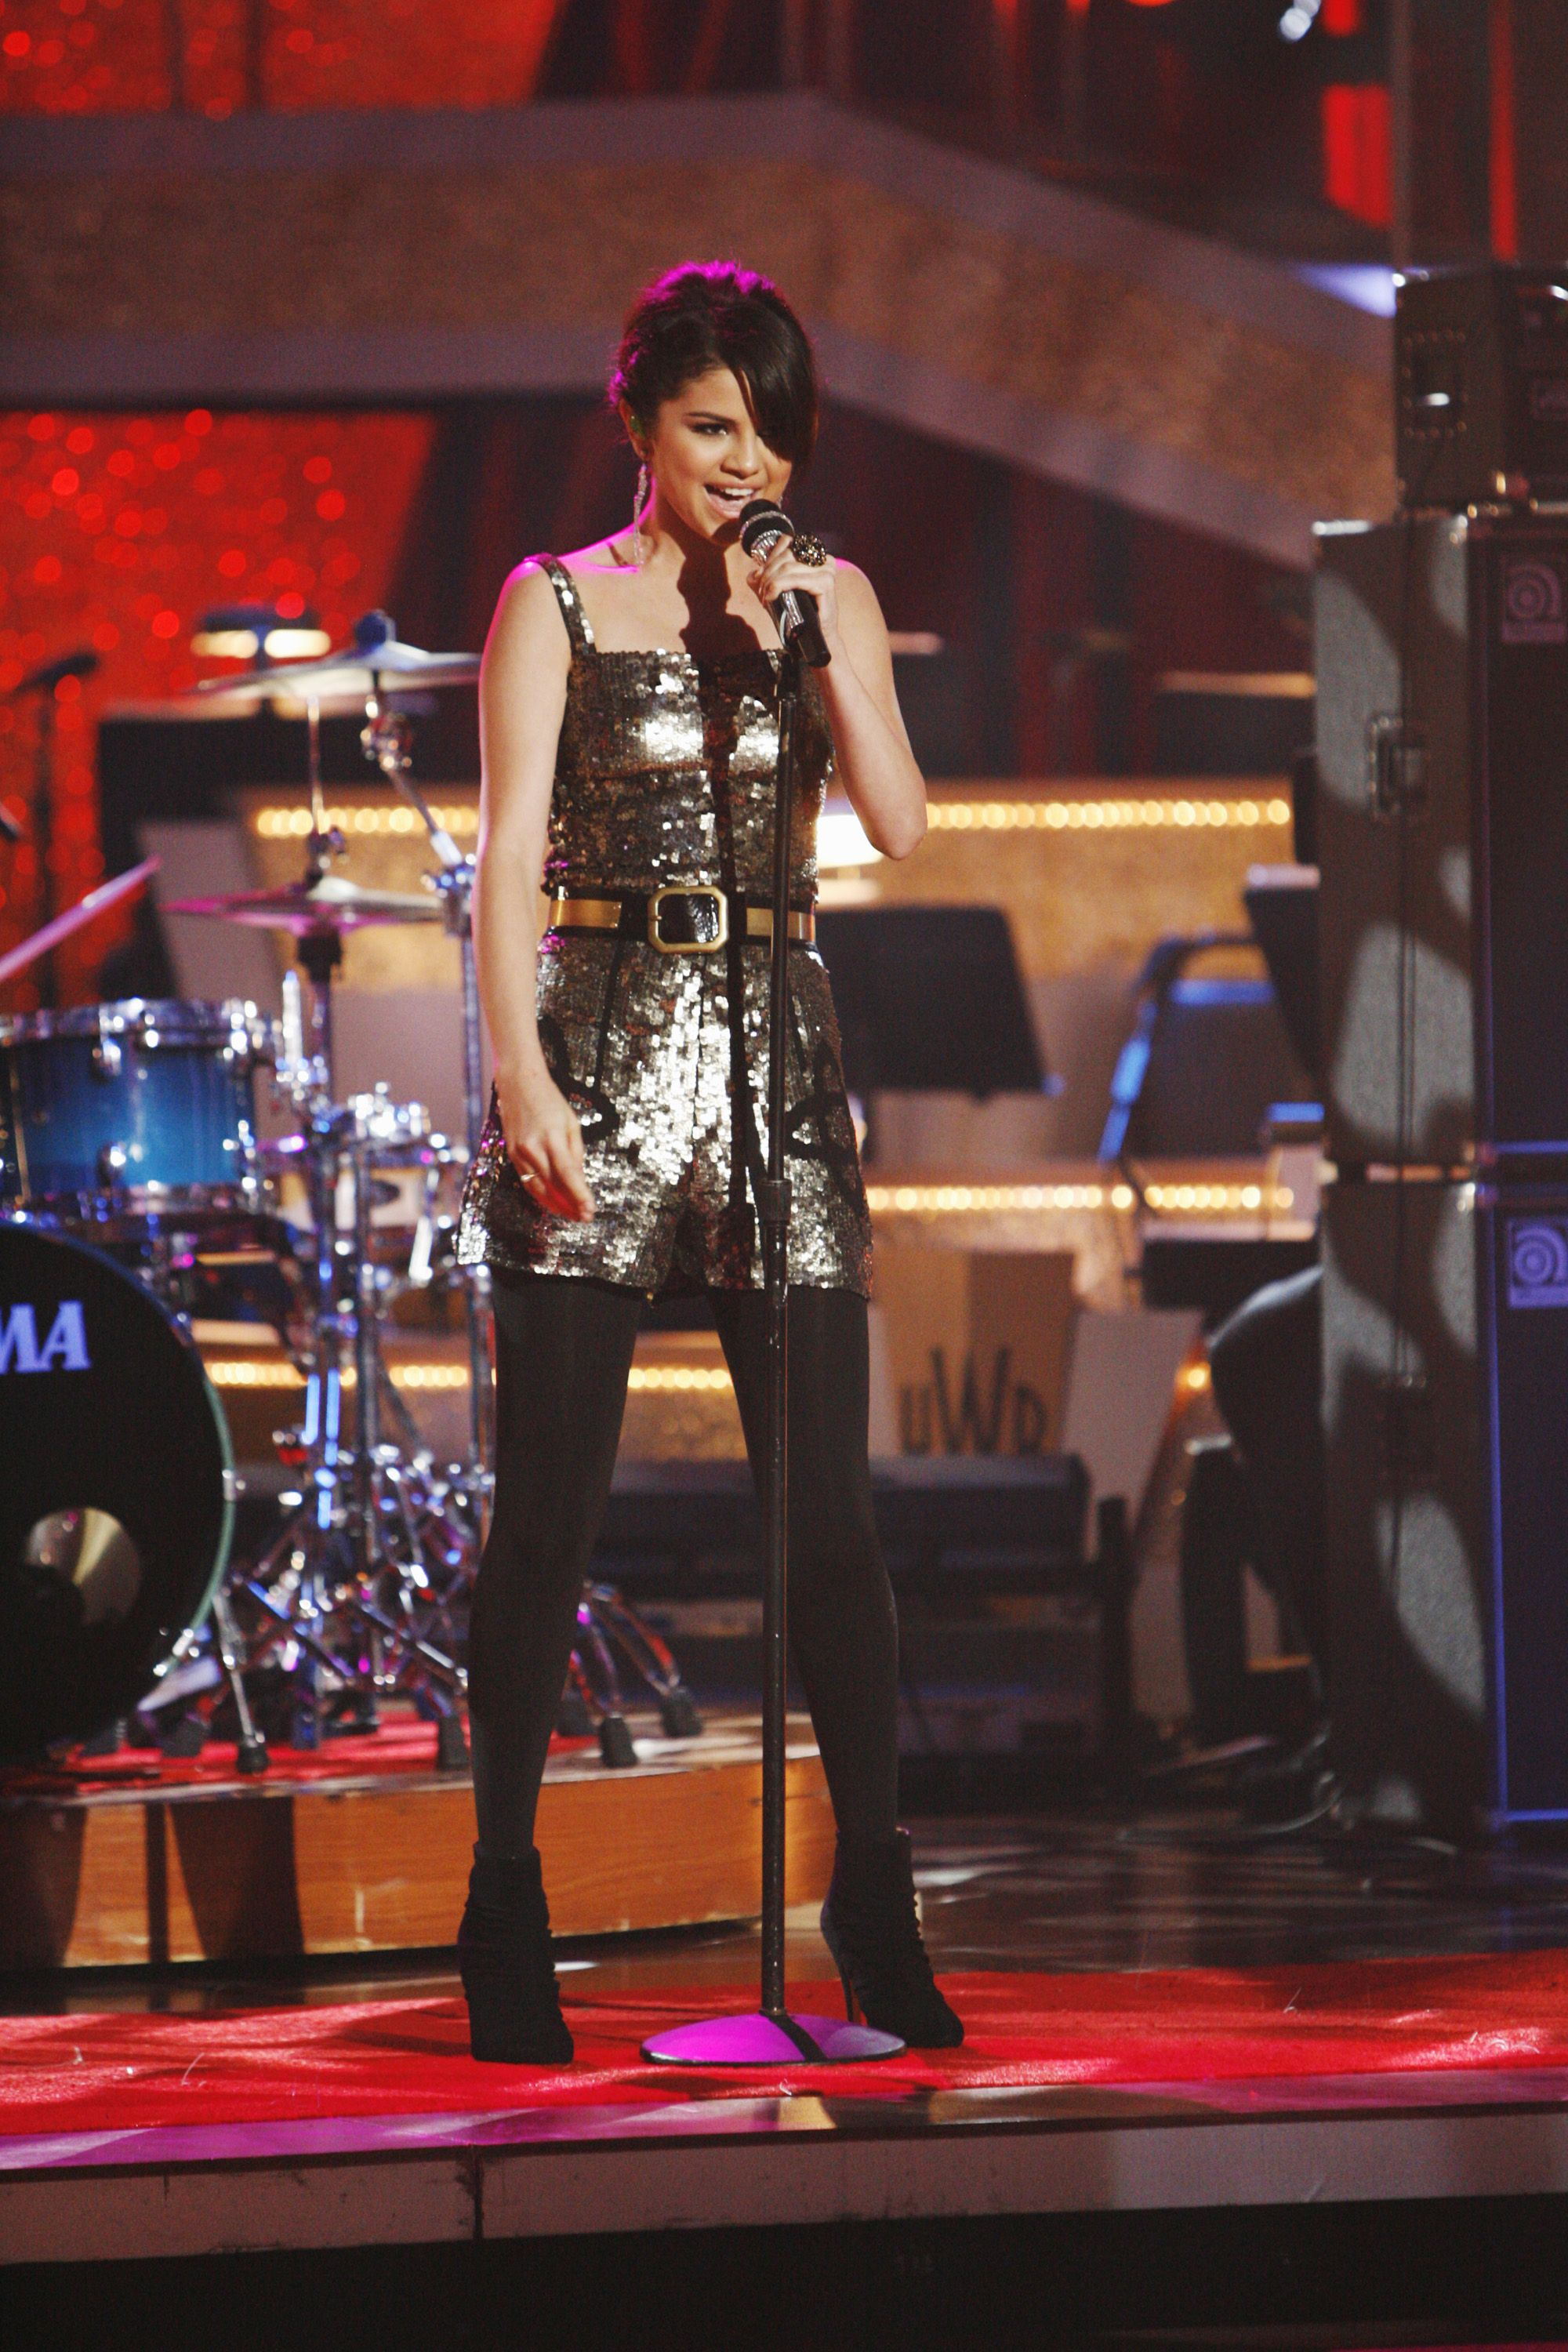 """<p>Selena and her old backing band The Scene performed """"Falling Down"""" from her first album<em data-verified=""""redactor"""" data-redactor-tag=""""em"""">Kiss & Tell</em><span class=""""redactor-invisible-space"""" data-verified=""""redactor"""" data-redactor-tag=""""span"""" data-redactor-class=""""redactor-invisible-space"""">on<em data-verified=""""redactor"""" data-redactor-tag=""""em"""">Dancing With the Stars</em><span class=""""redactor-invisible-space"""" data-verified=""""redactor"""" data-redactor-tag=""""span"""" data-redactor-class=""""redactor-invisible-space""""> way back in 2009. So many sequins, so little time.</span></span> </p>"""